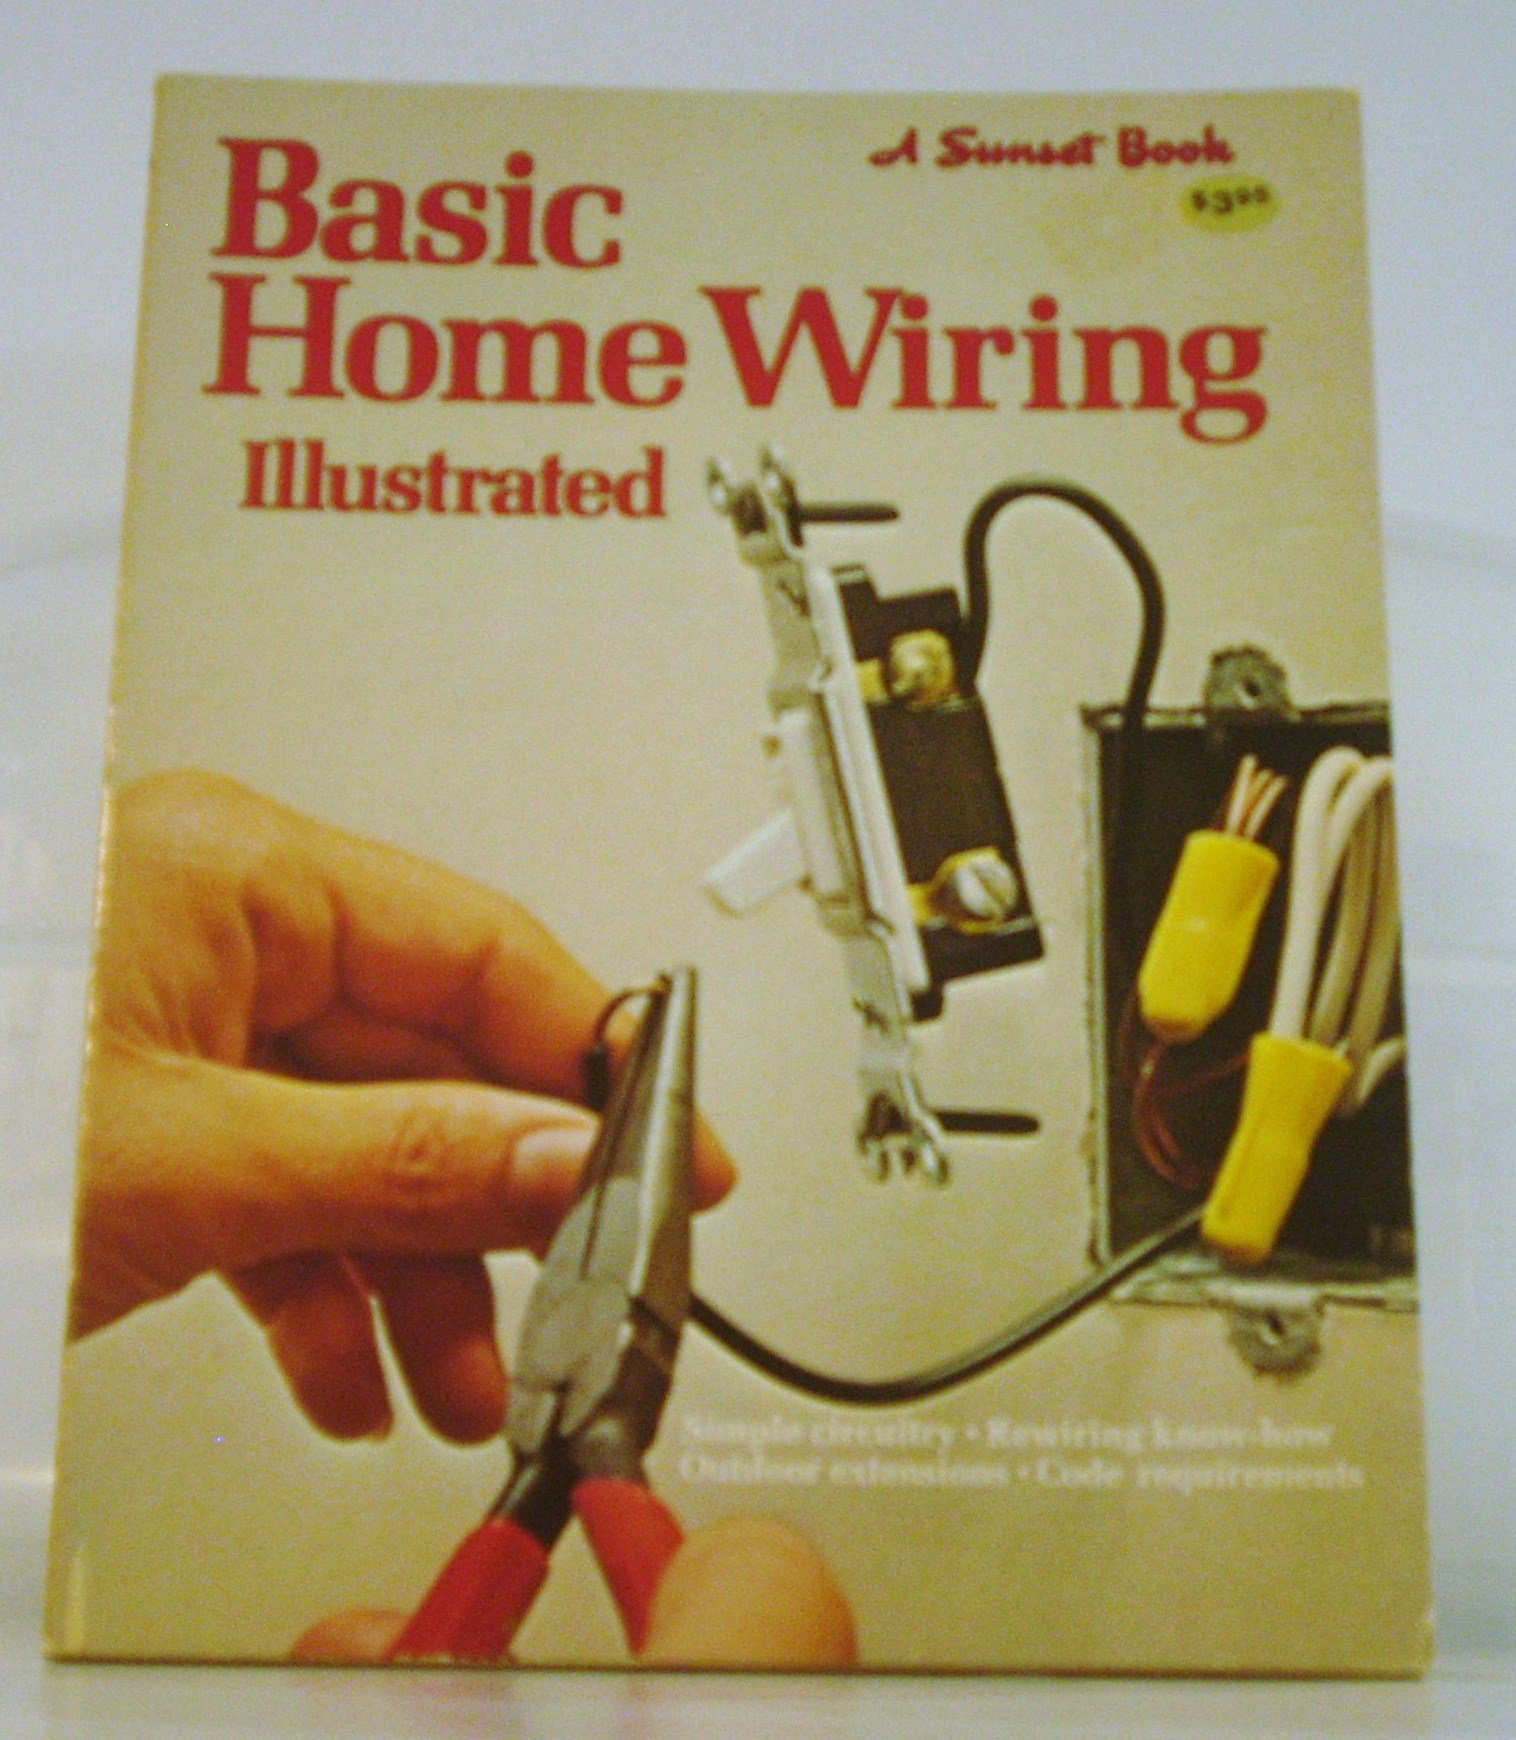 Basic Home Wiring Illustrated: Linda J. Selden, Sunset Books:  9780376010933: Amazon.com: Books | Basic Wiring Home Book |  | Amazon.com